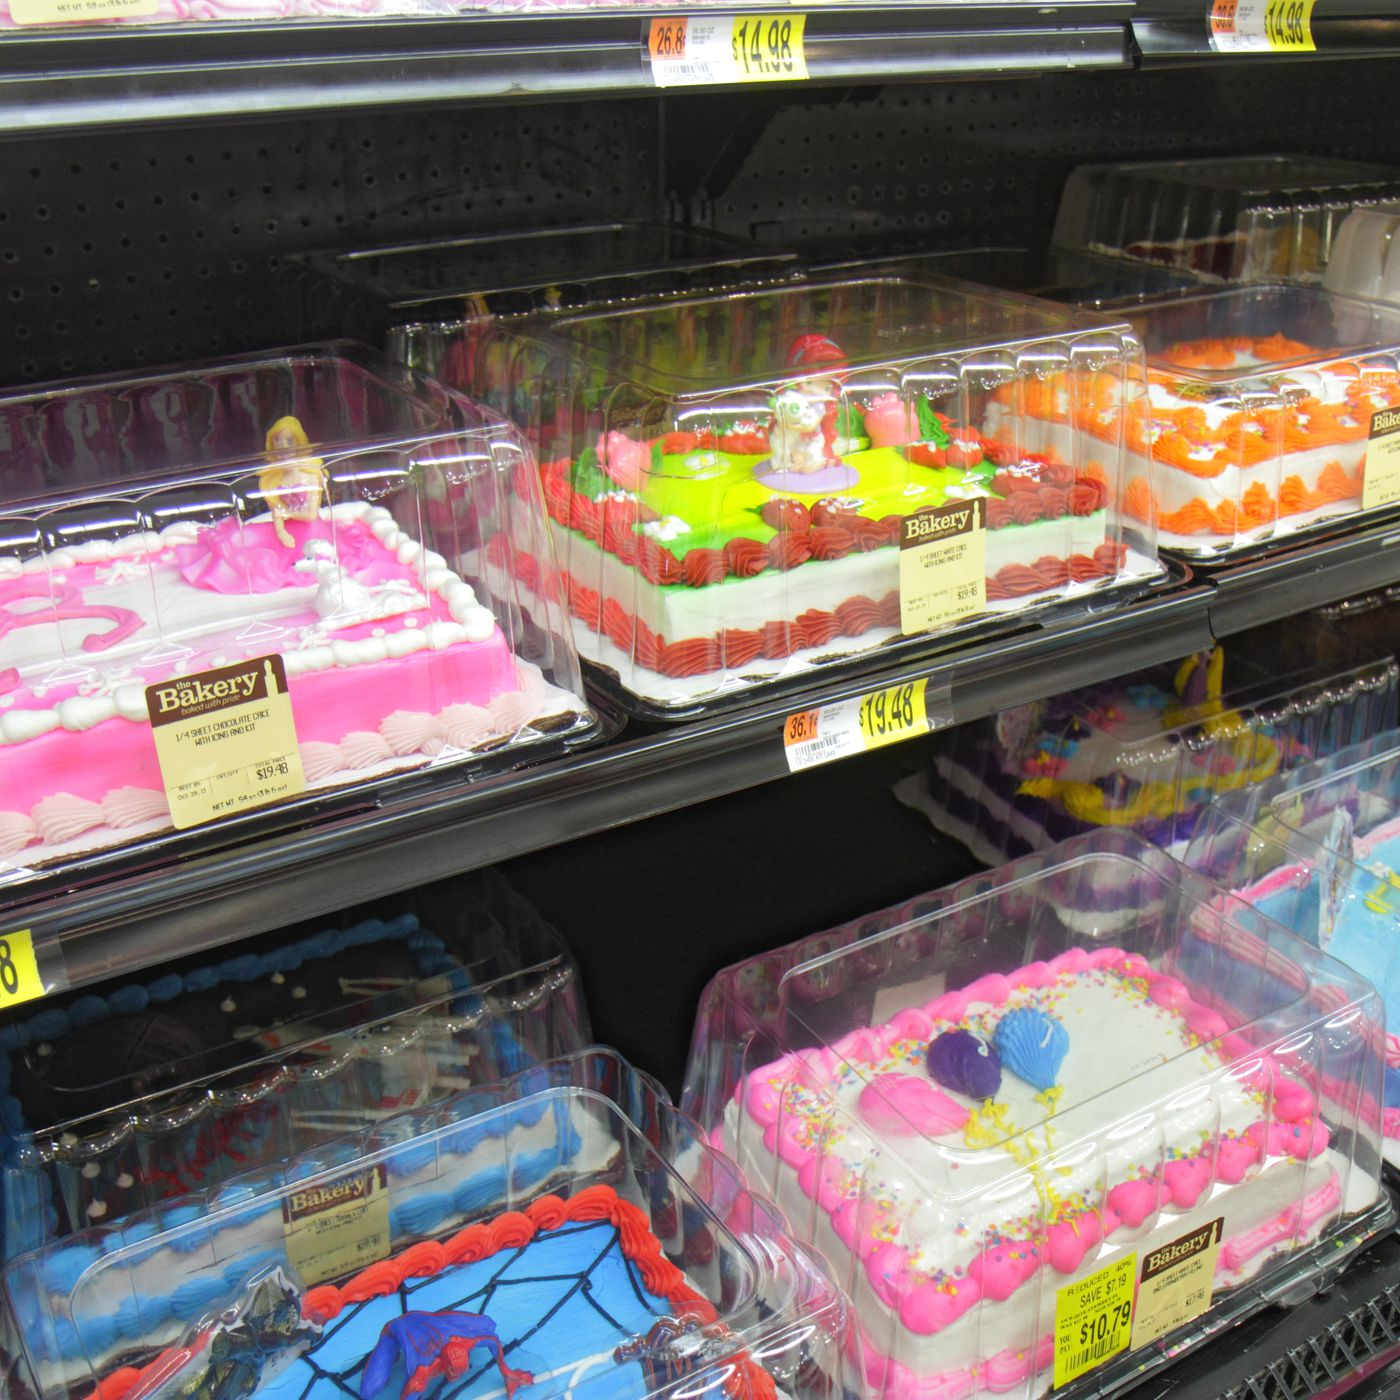 Remarkable Texas Woman Eats Half A Cake At Walmart Refuses To Pay Full Price Personalised Birthday Cards Bromeletsinfo